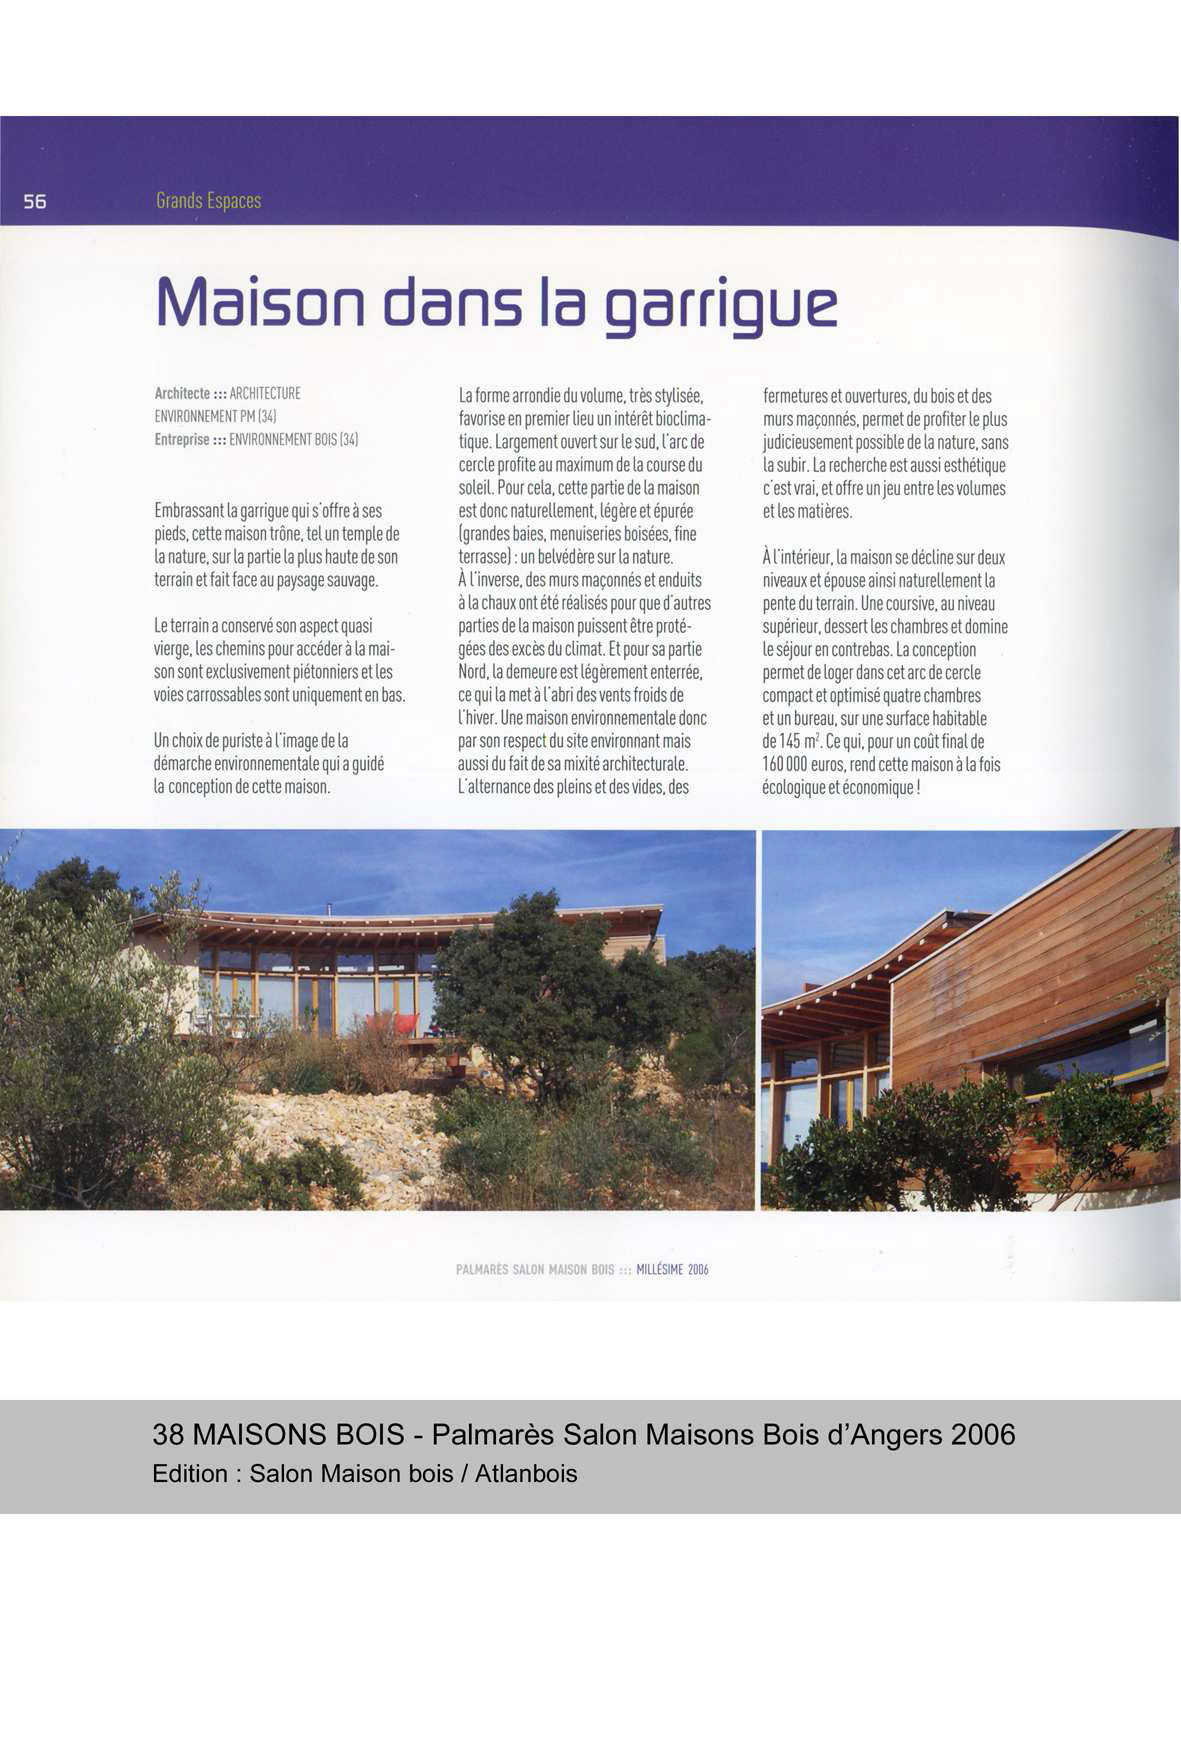 palmares-salon-maison-bois-dangers-2006-maison-dans-la-garrigue